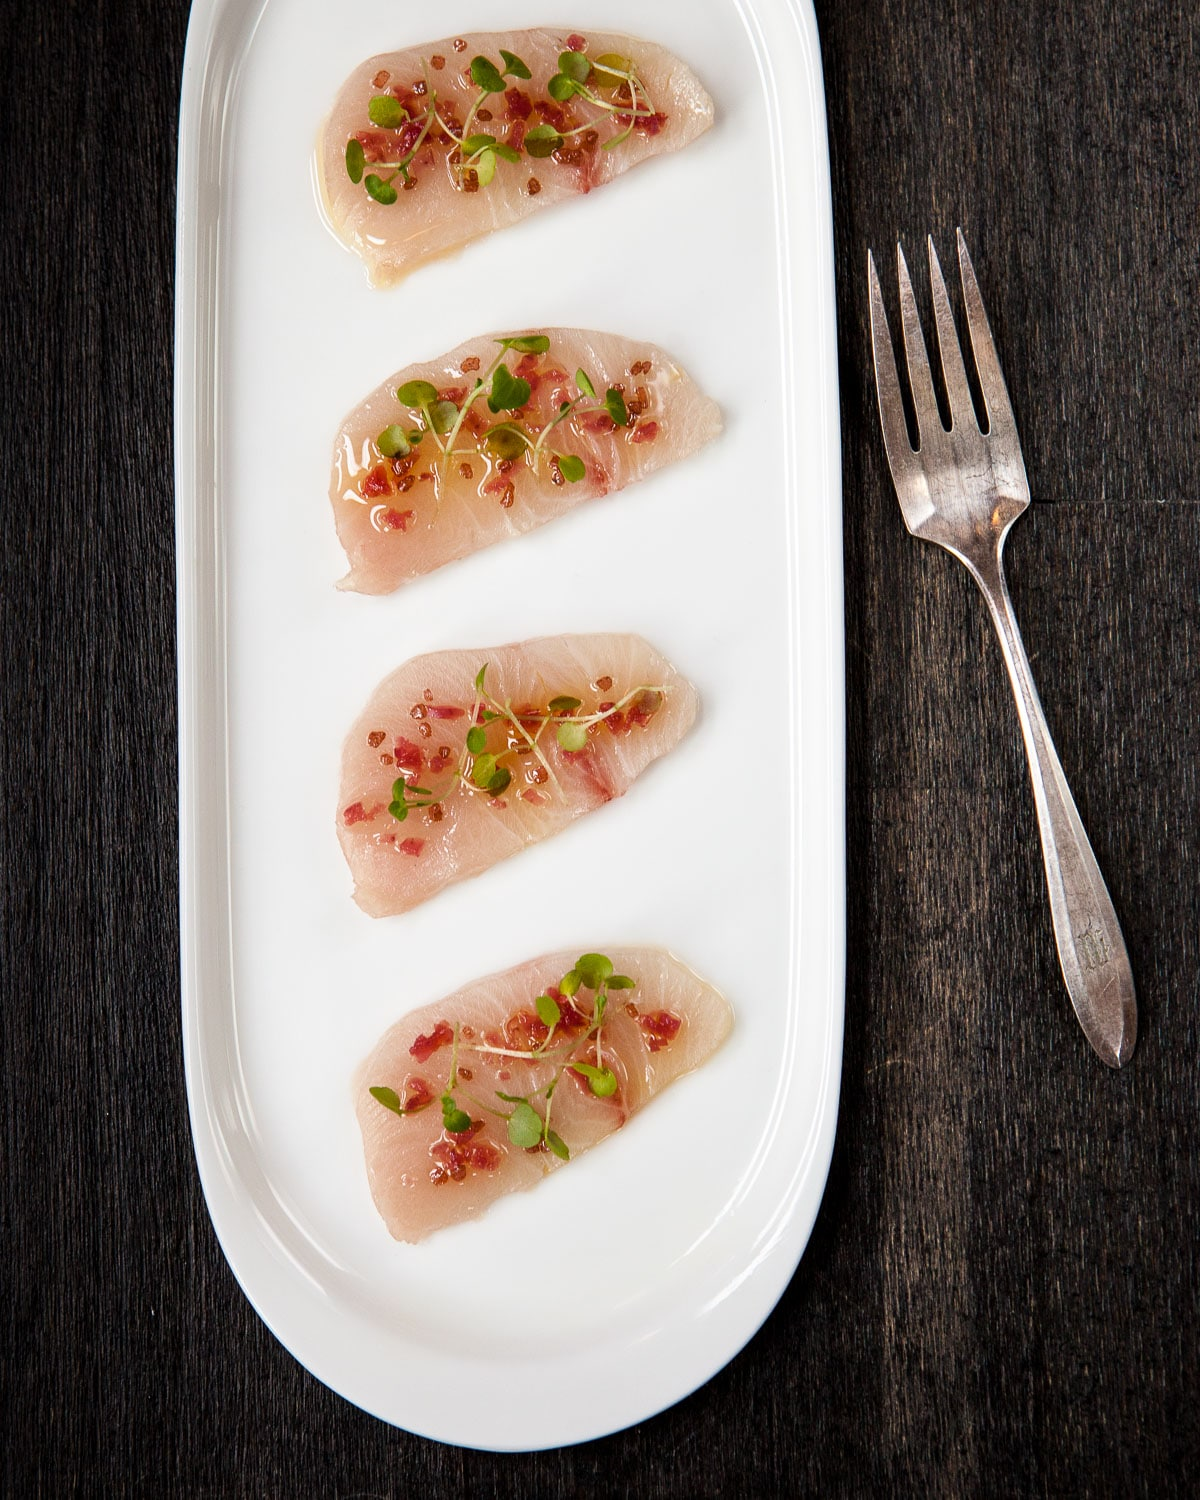 Four slices of fresh yellowtail fish topped with a raw salsa of chilies and oil on a white oval platter.